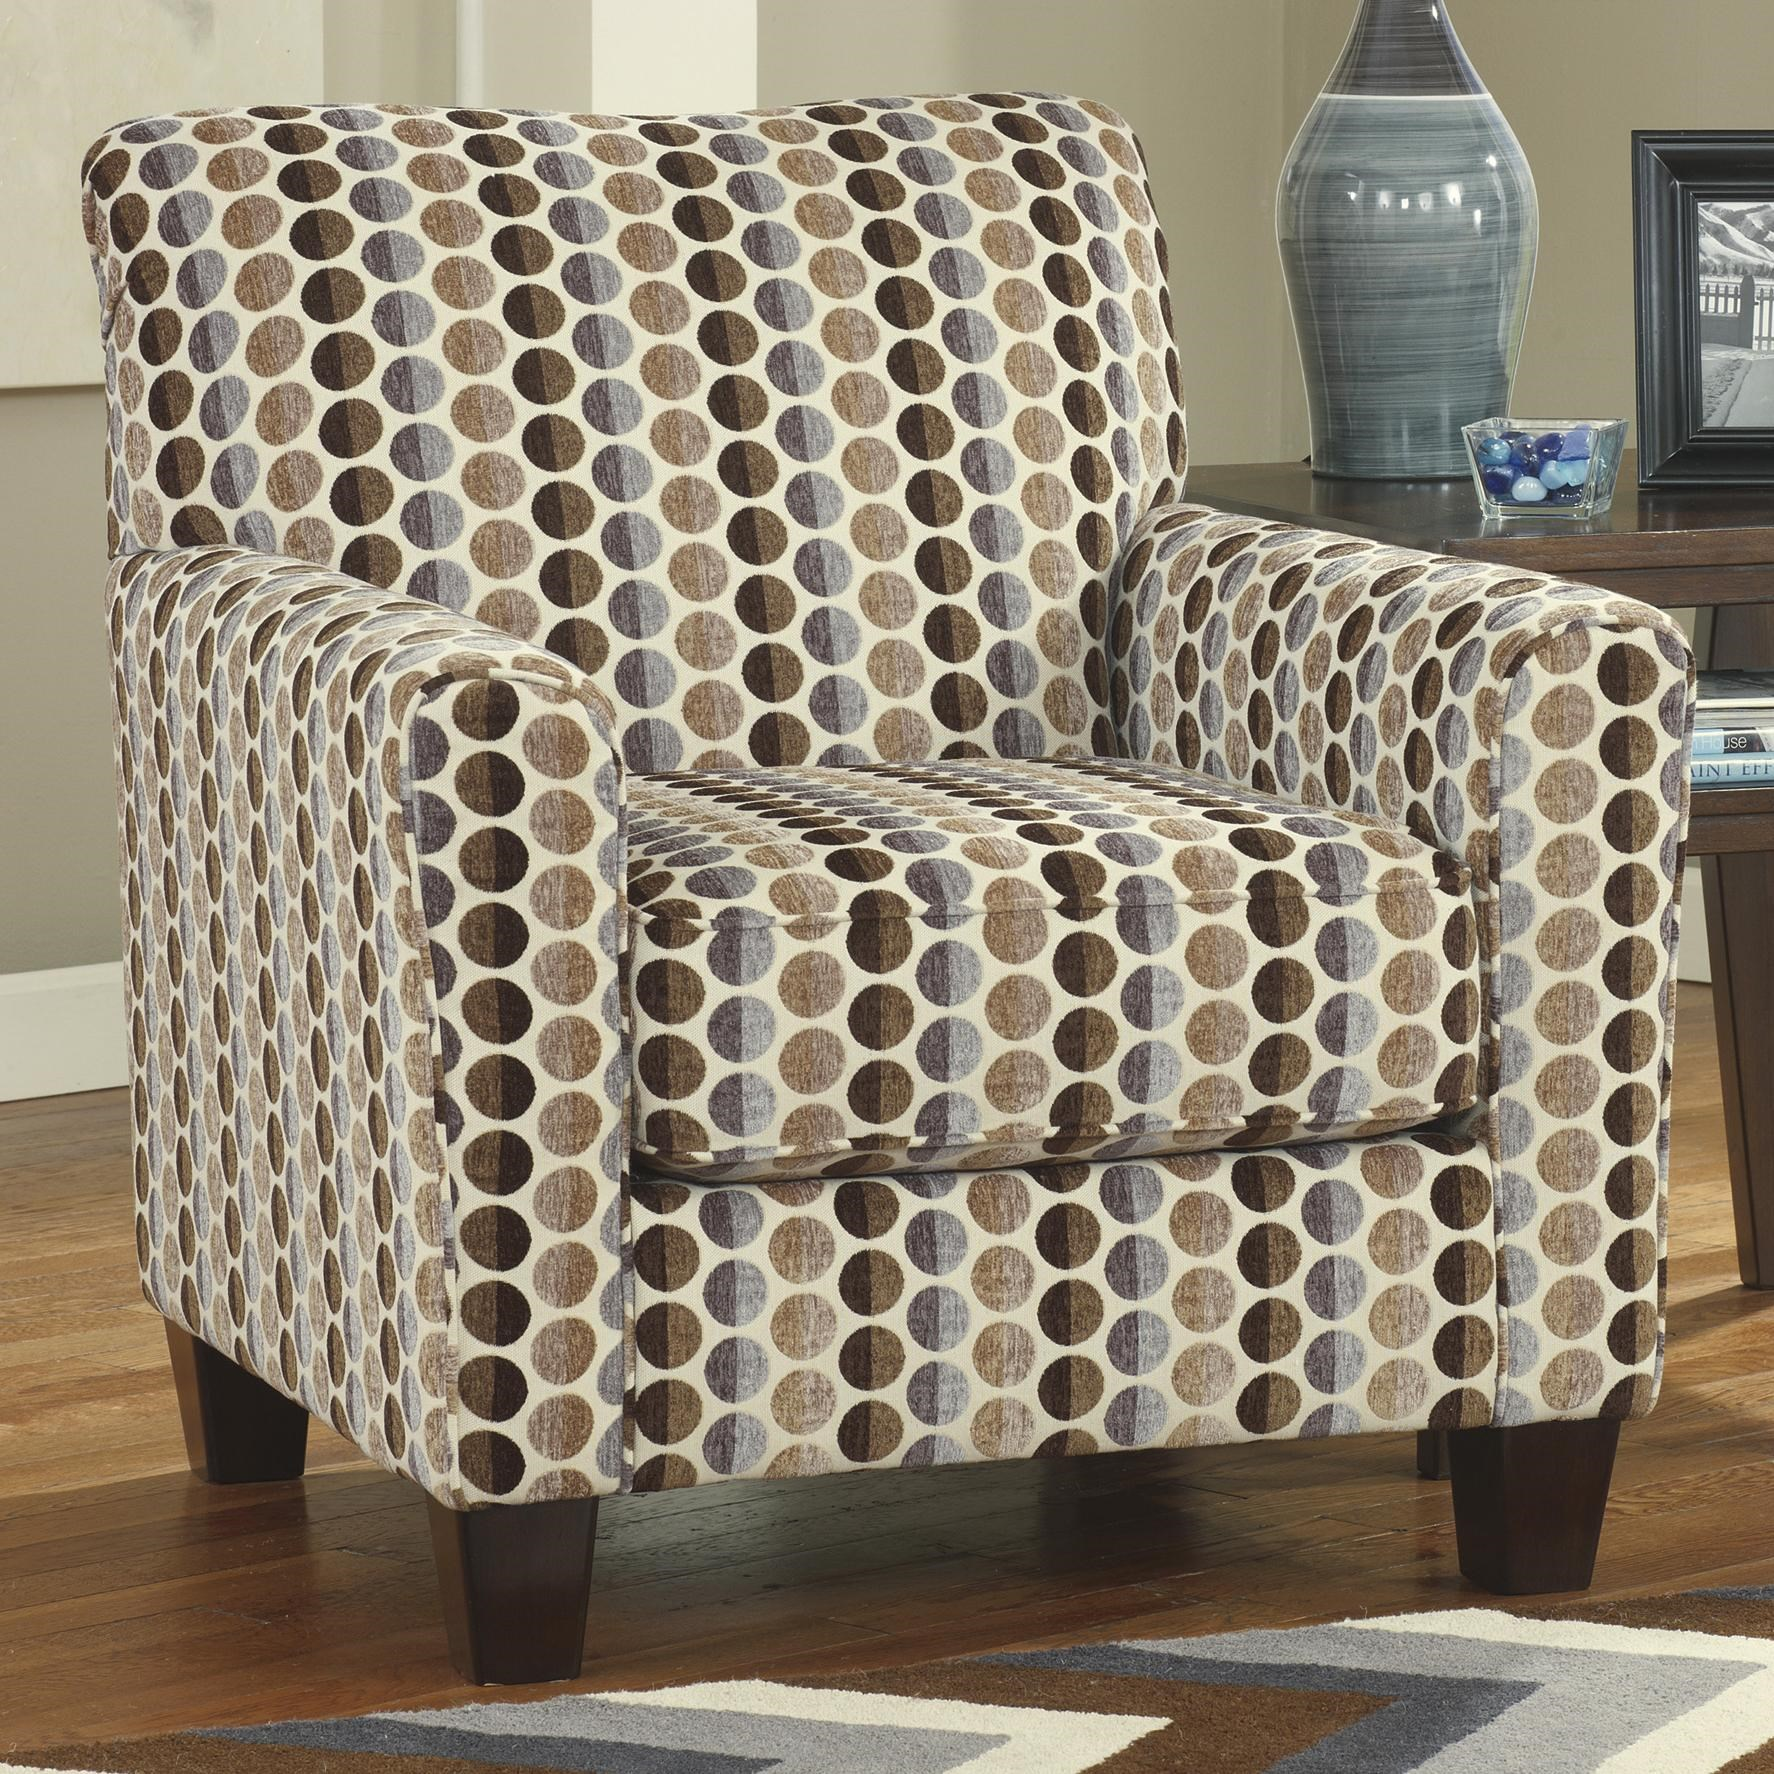 Ashley Furniture Geordie Contemporary Accent Chair With Circle Print